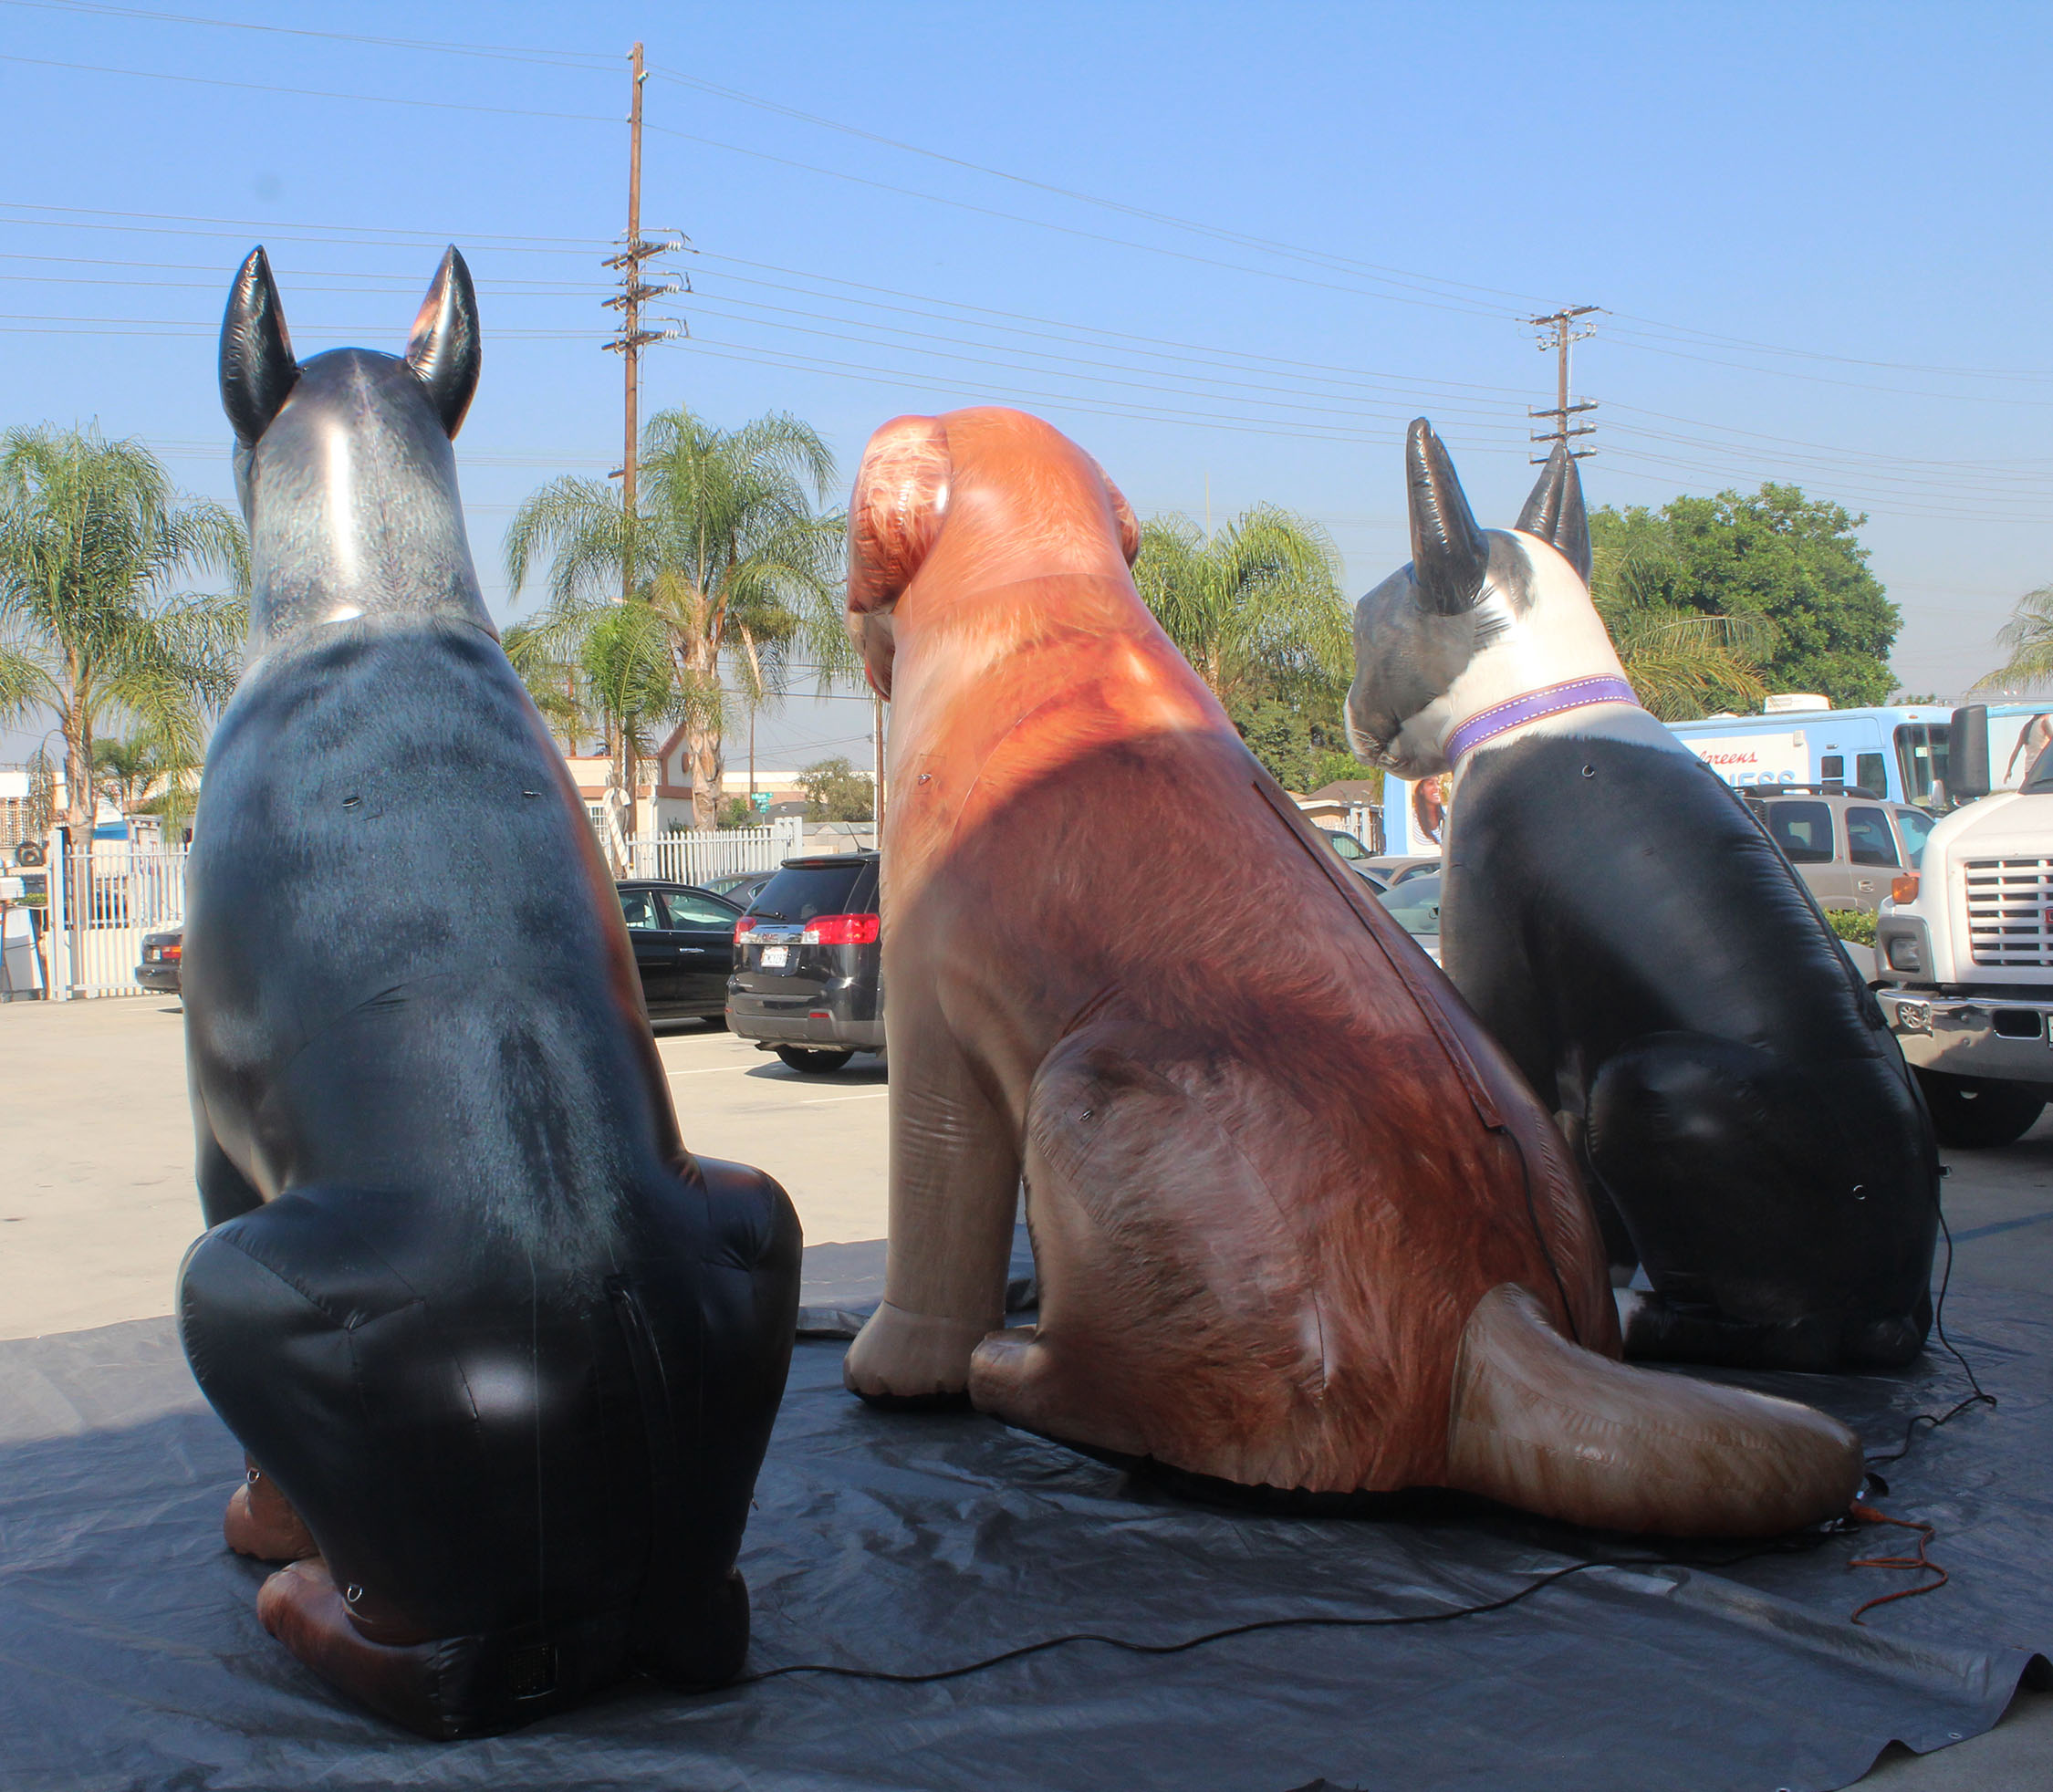 giant inflatable dogs